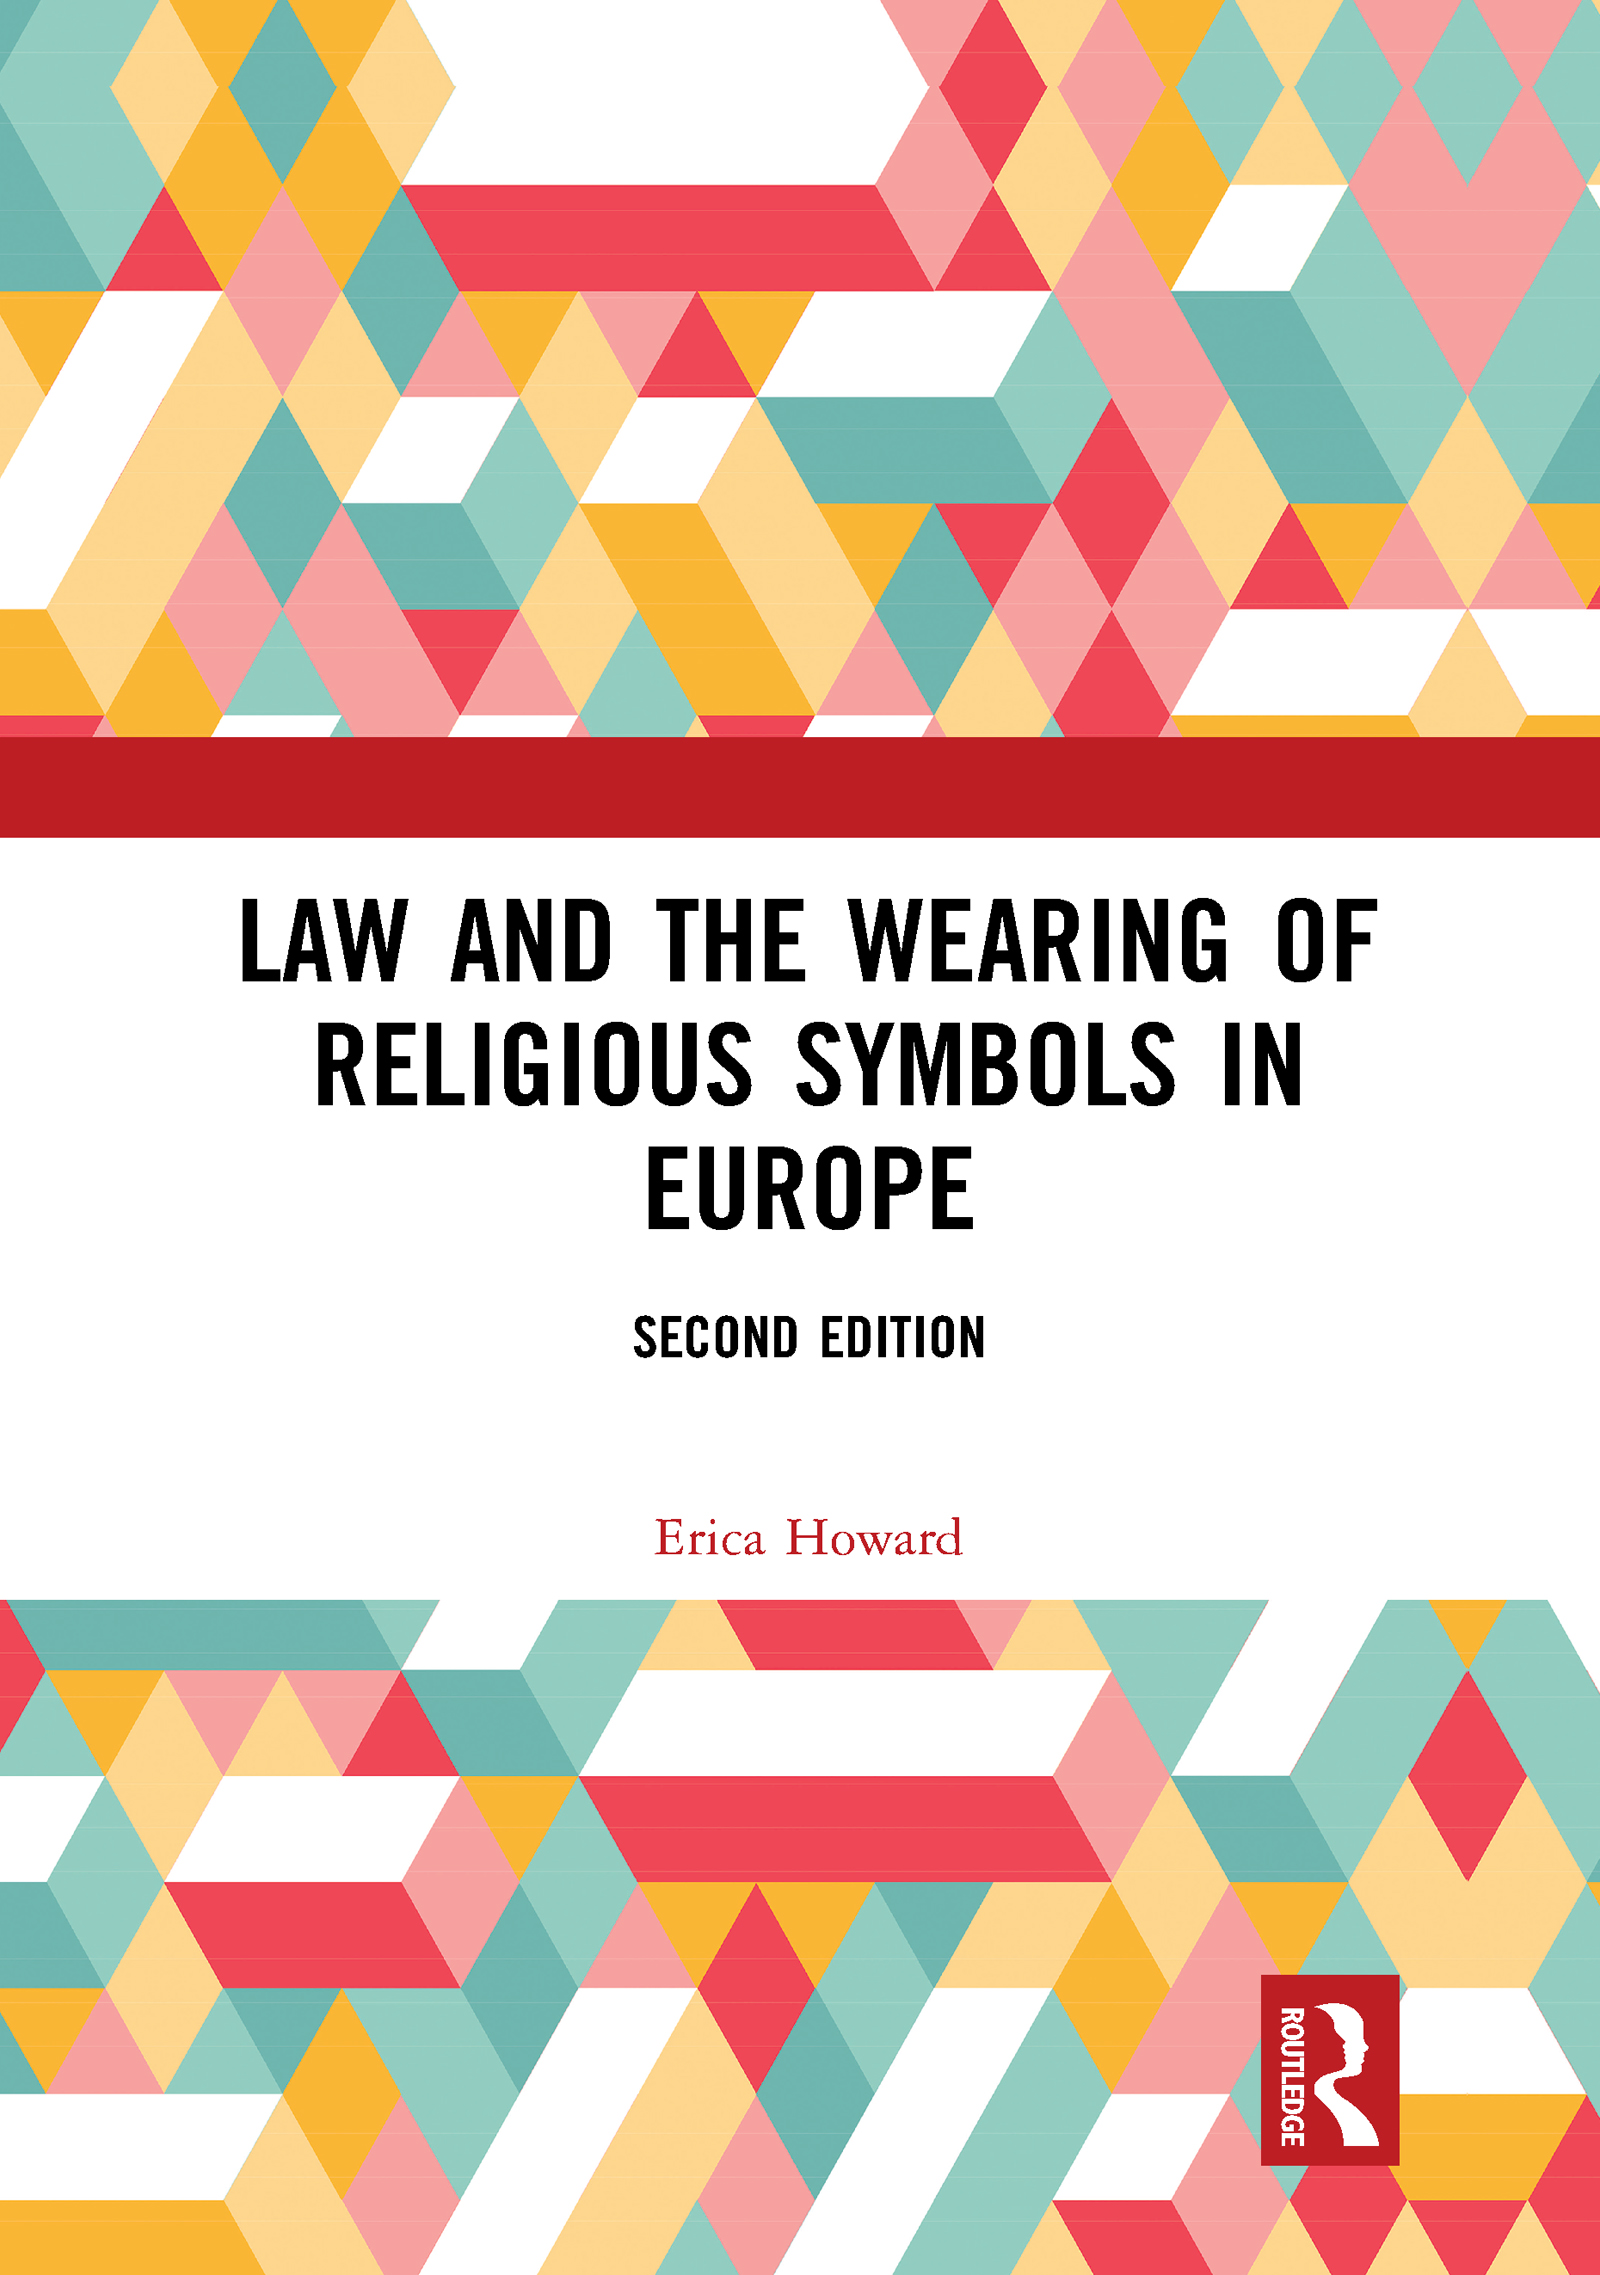 Law and the Wearing of Religious Symbols in Europe